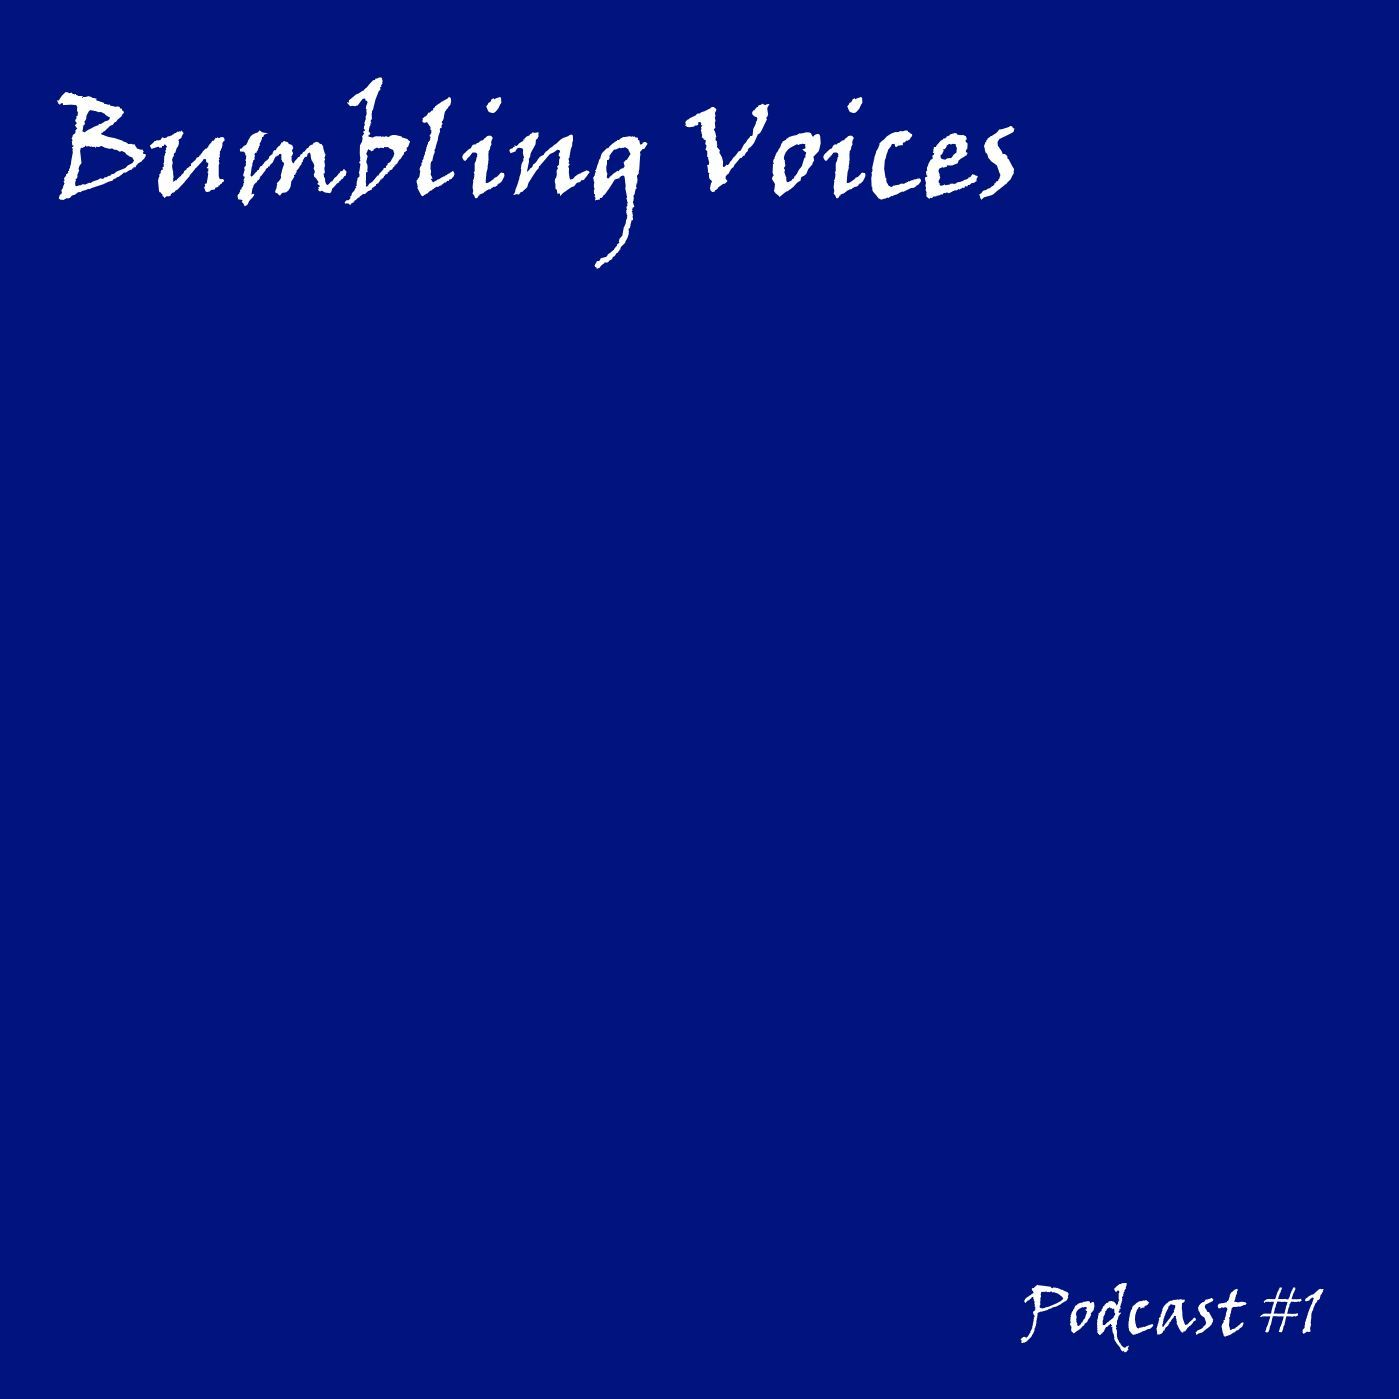 Bumbling Voices Podcast #1